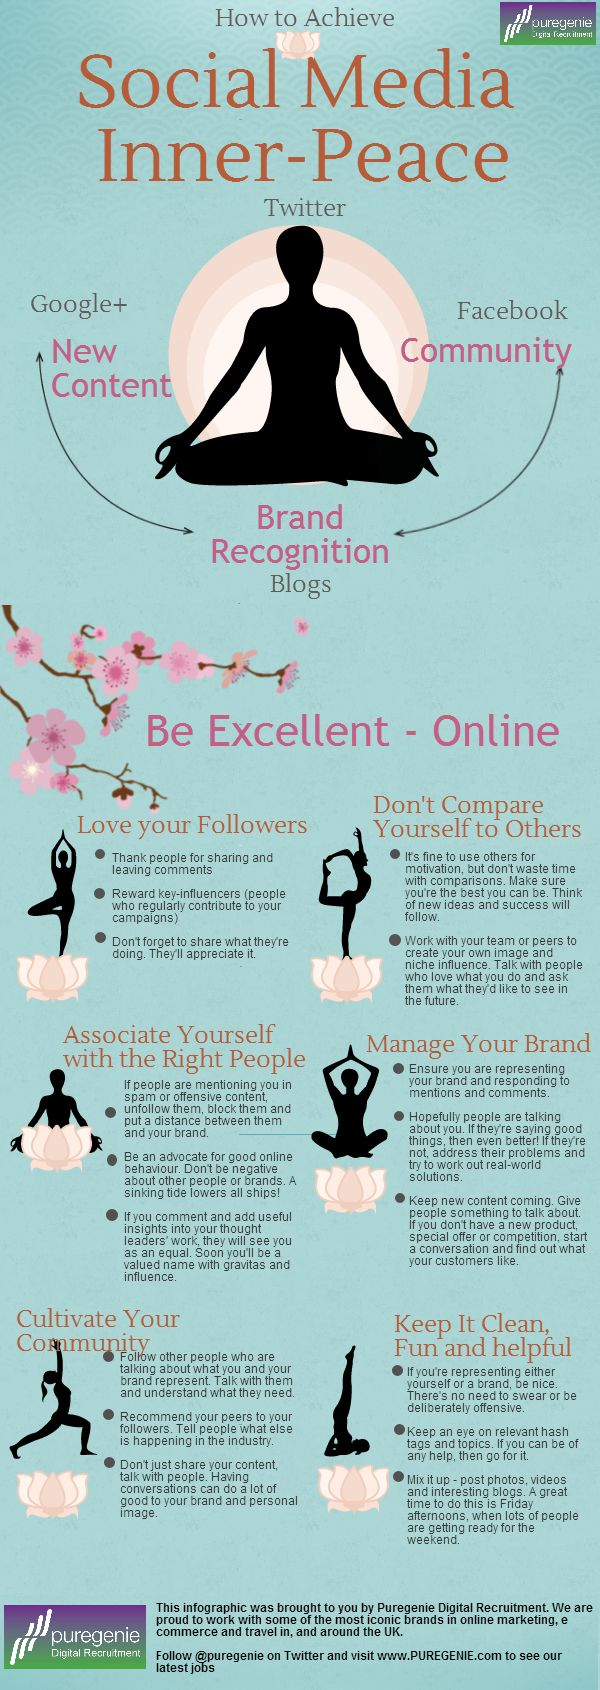 Nice one: How to Achieve Social Media Inner-Peace #infographic